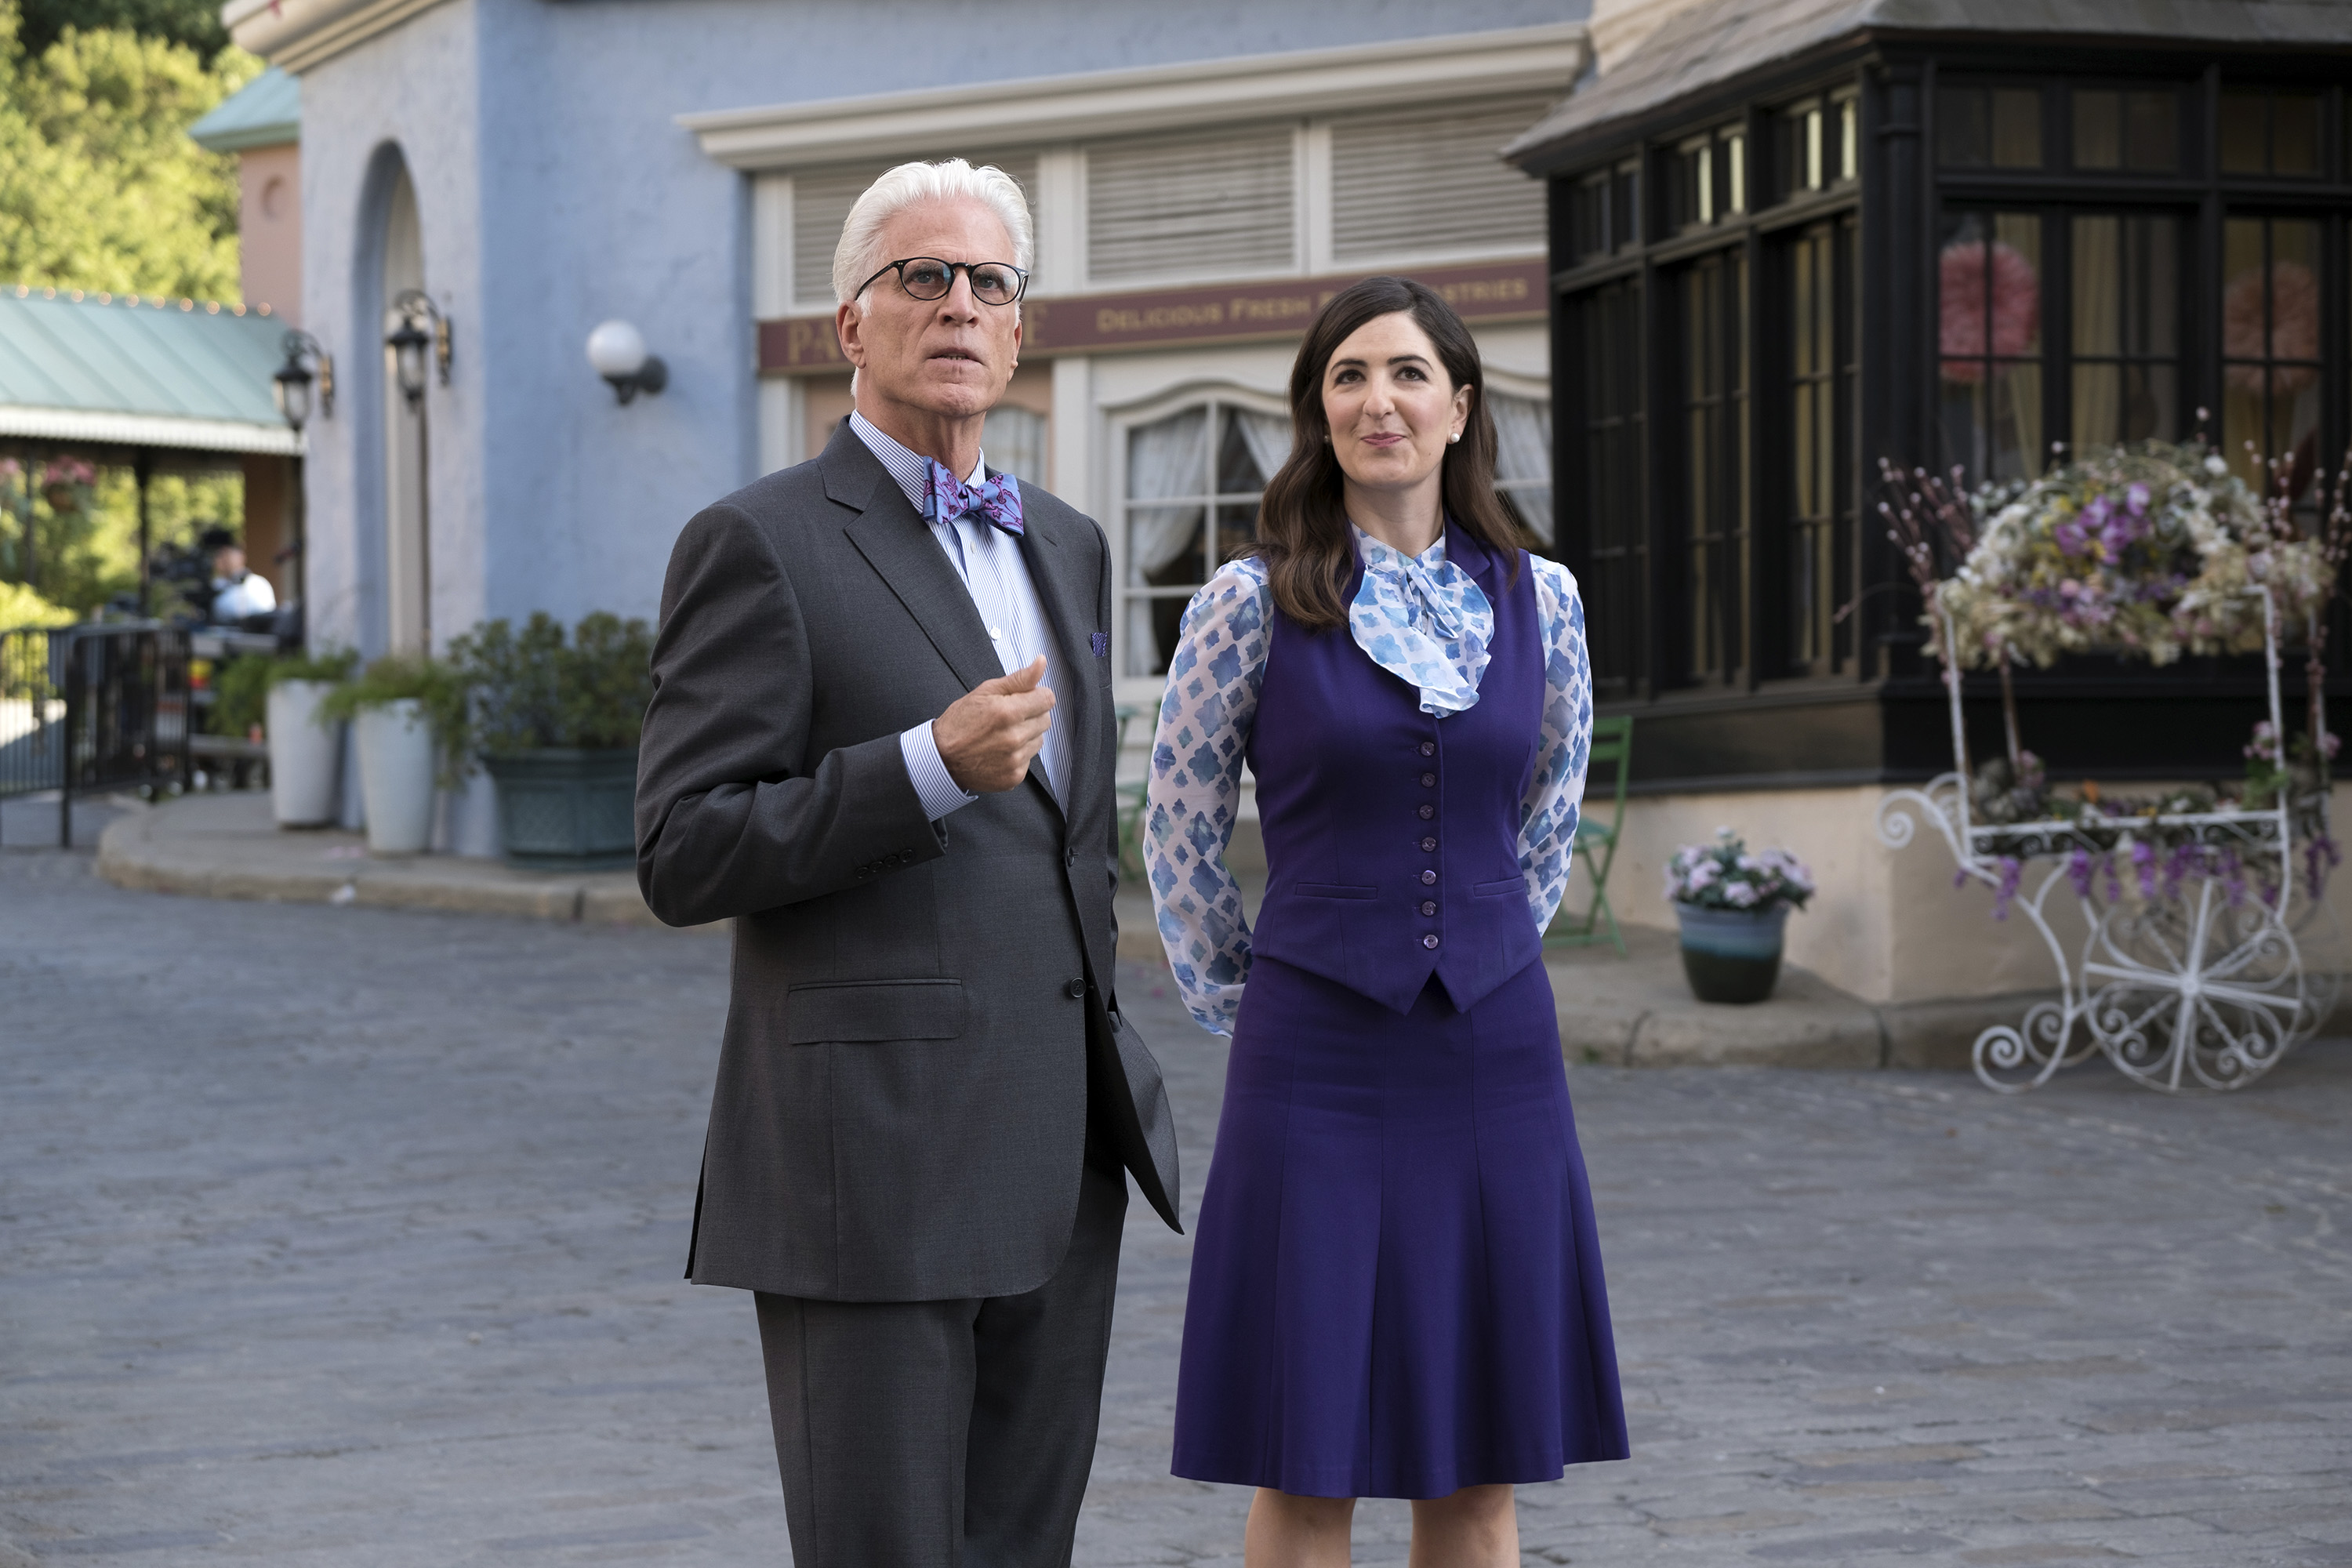 Ted Danson as Michael and D'Arcy Carden as Janet in season 2 of The Good Place.